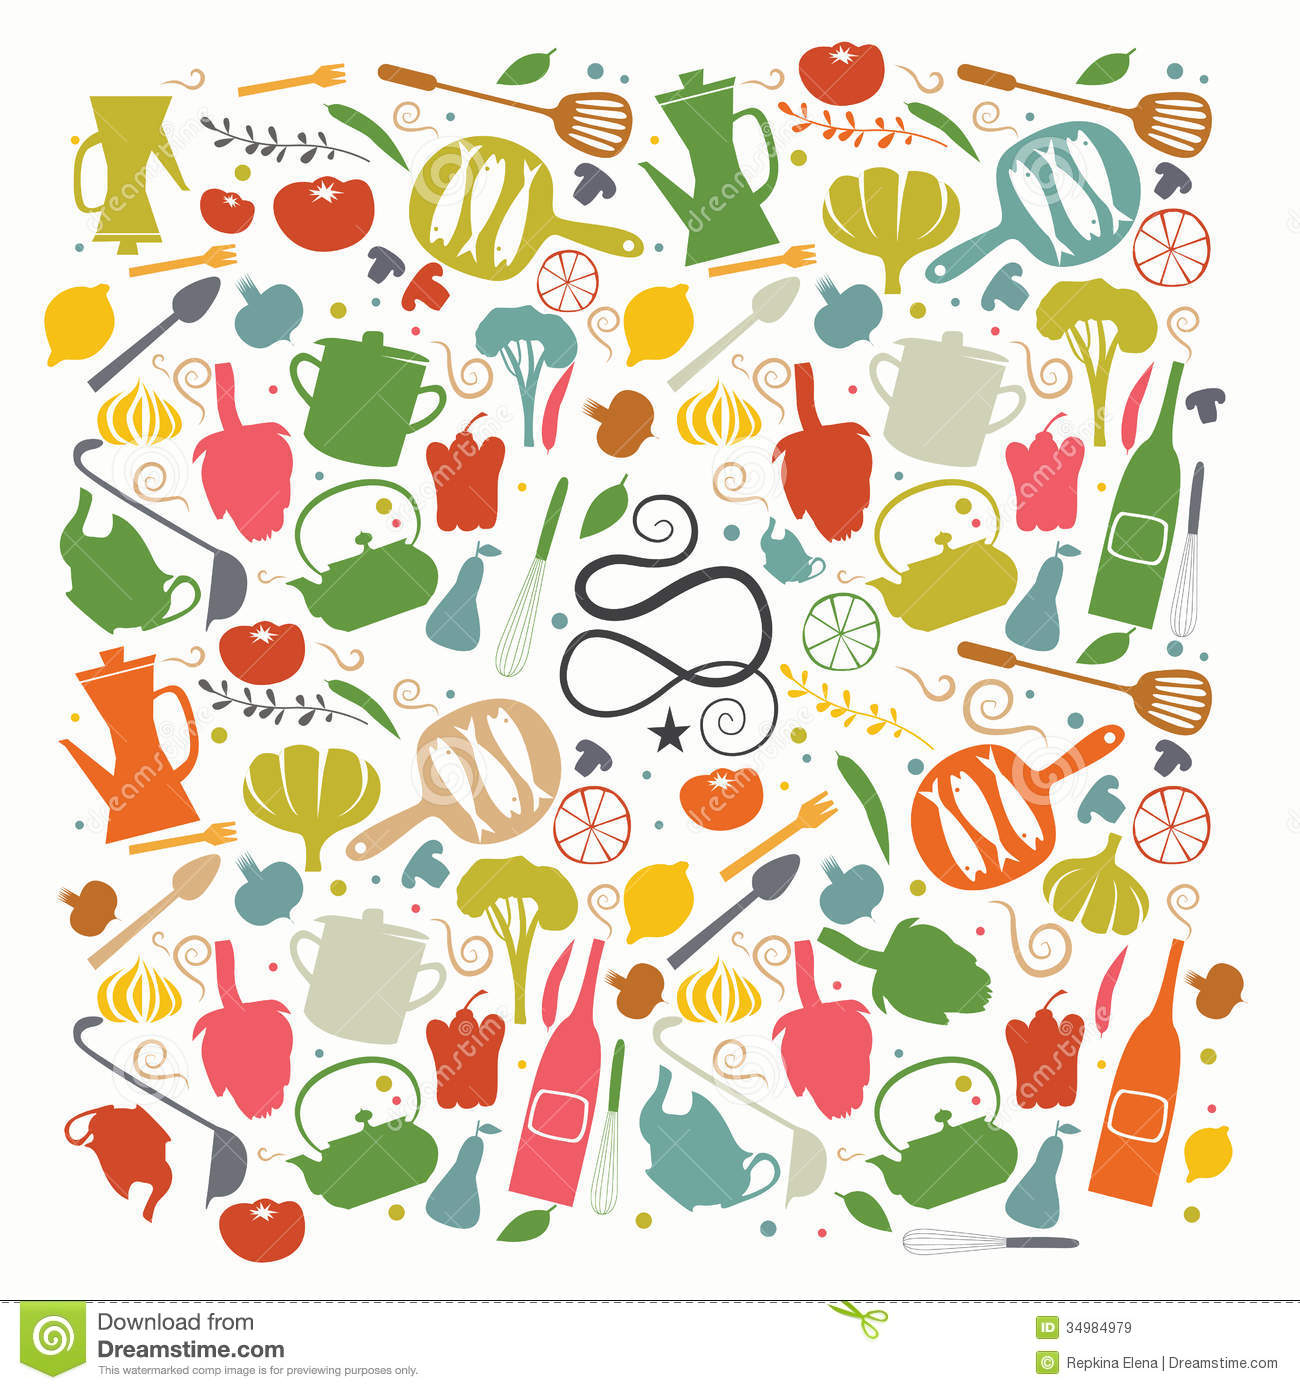 Cookbook Cover Template Free Download : Cookbook covers clipart suggest